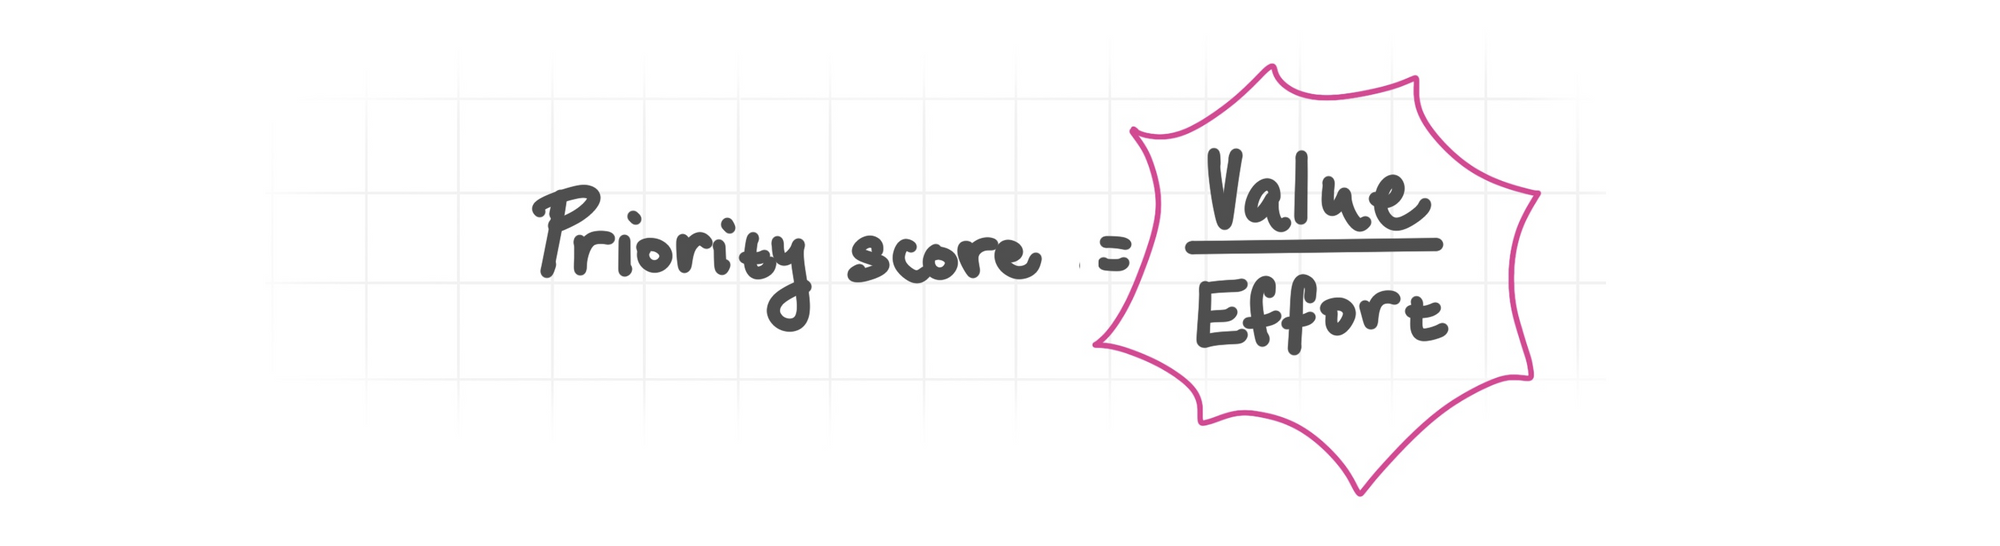 How to Calculate Priority Score based on Business Value and Effort.